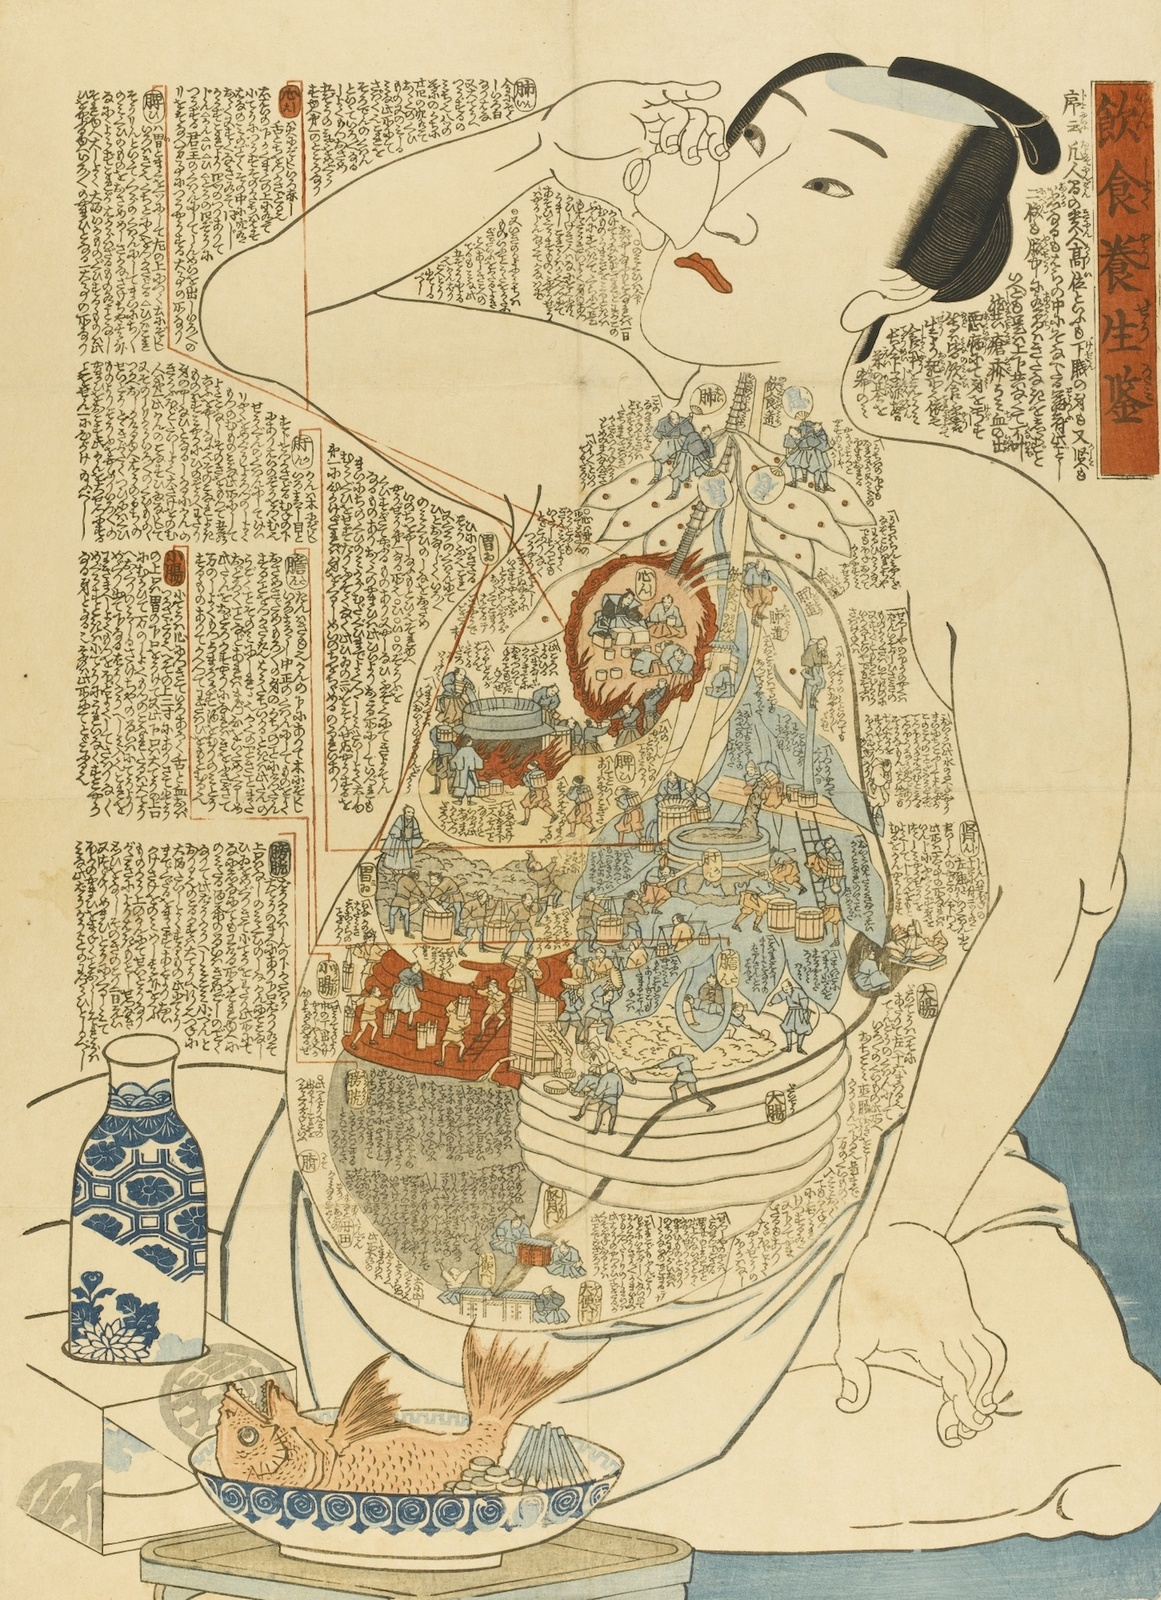 Inshoku yōjō kagami Translated Title: Model for healthy diet Creator/Contributor: unknown, Artist Abstract: P008-b was the wrapper for P008-a Date: 19th Century